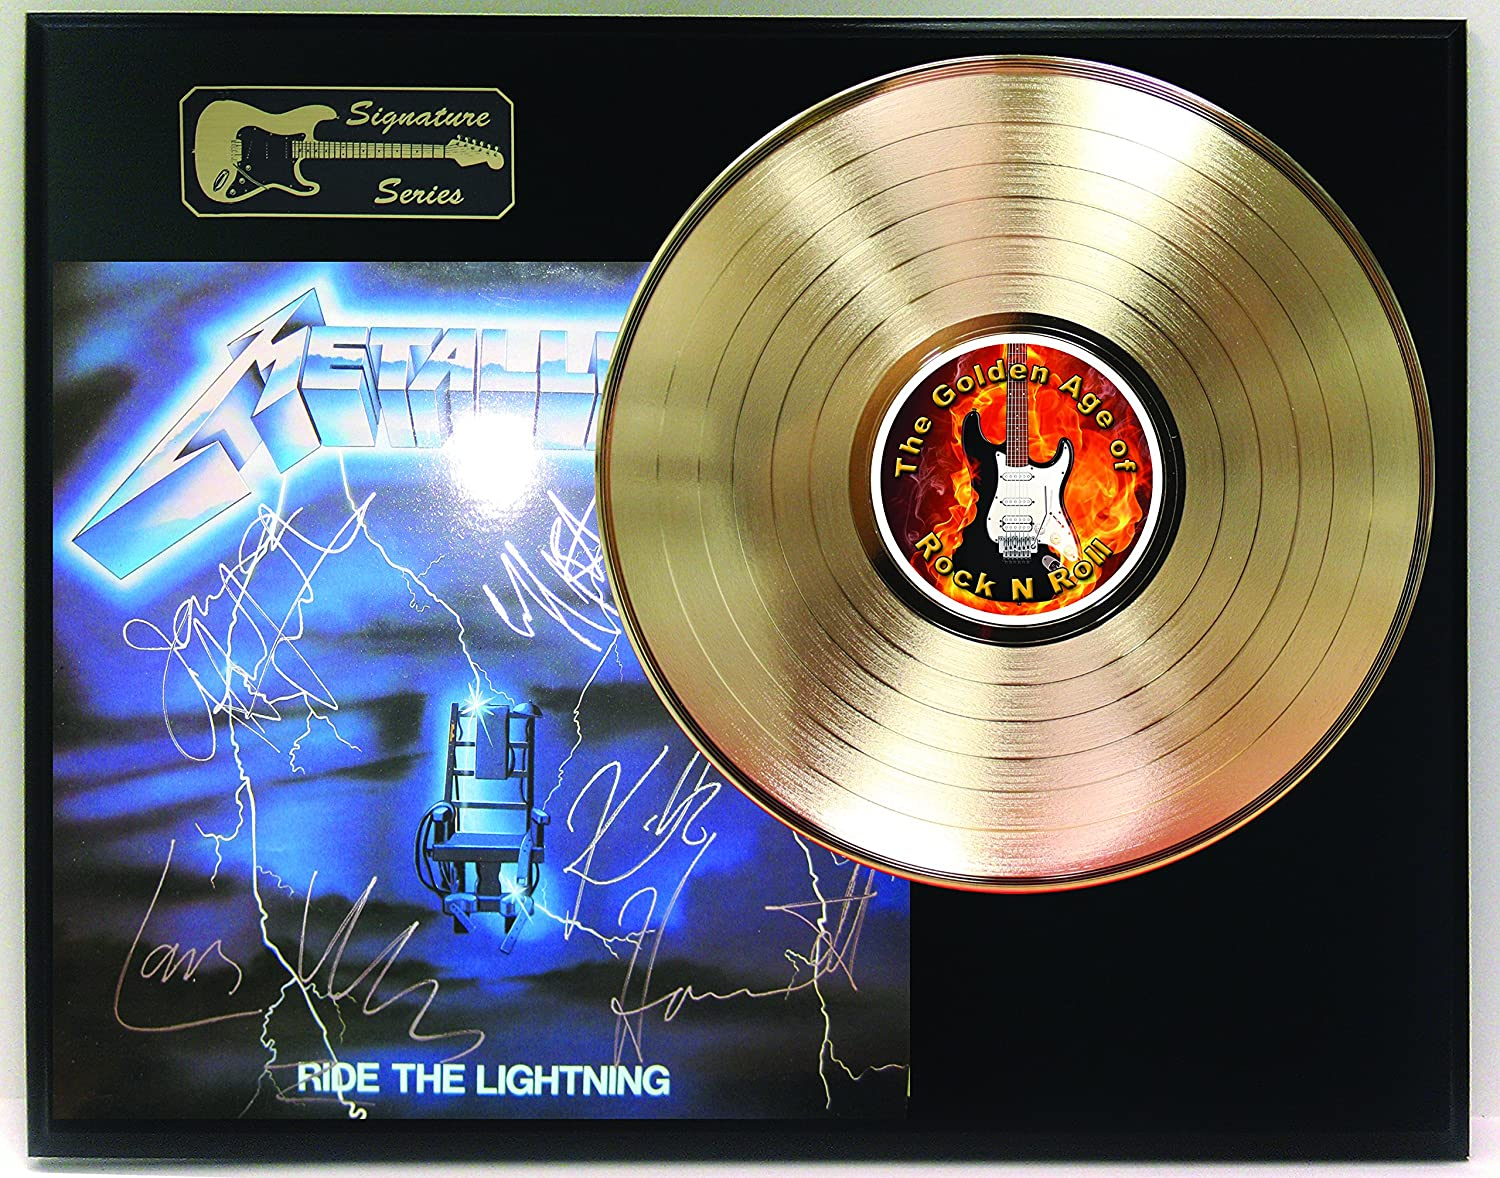 Metallica Gold LP Record Reproduction Signature Series Limited Edition Display